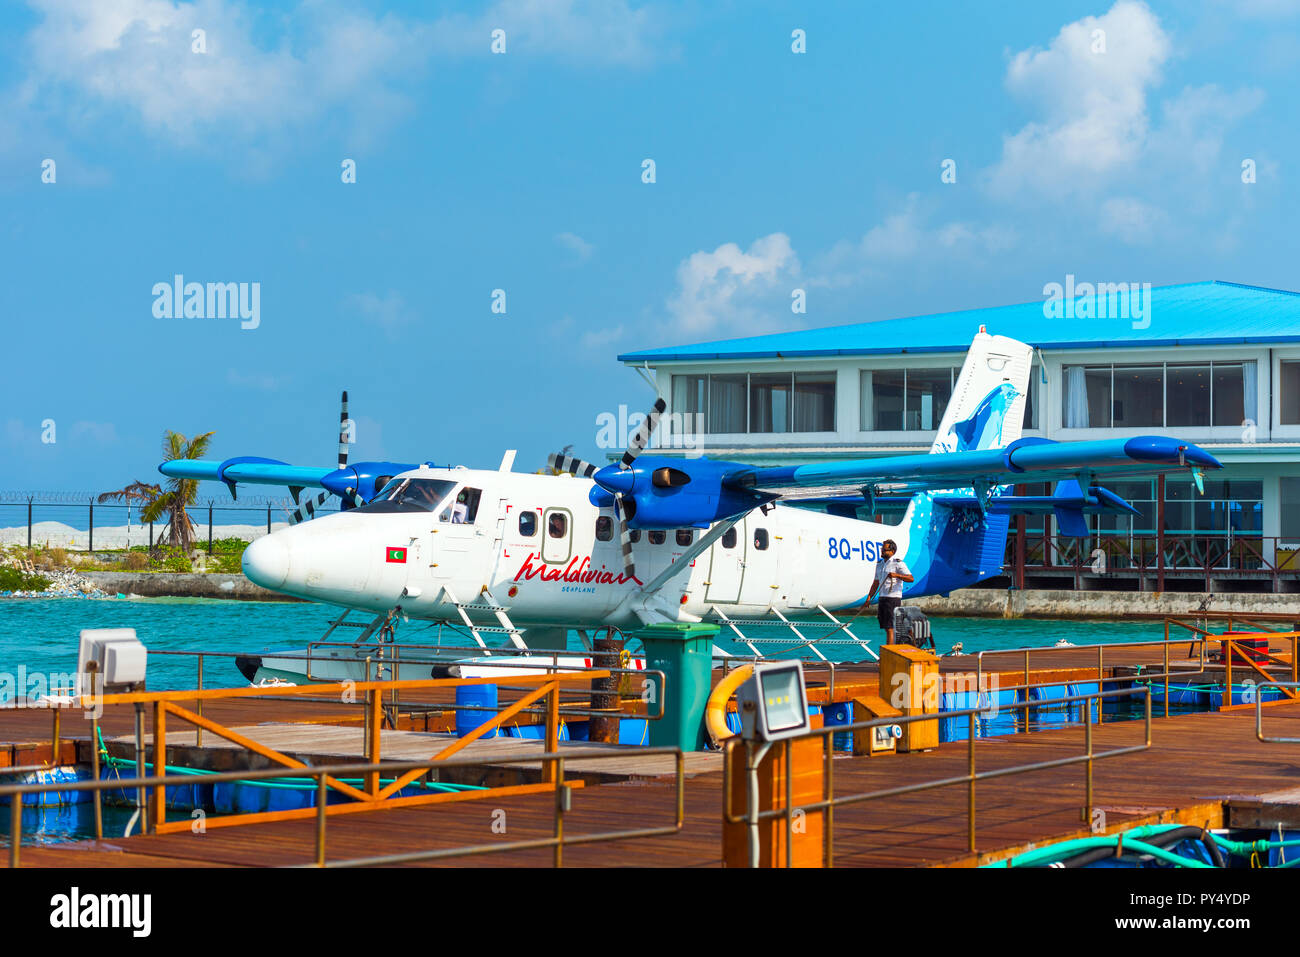 HAWAII, USA - FEBRUARY 18, 2018: Seaplane at the pier. Copy space for text - Stock Image